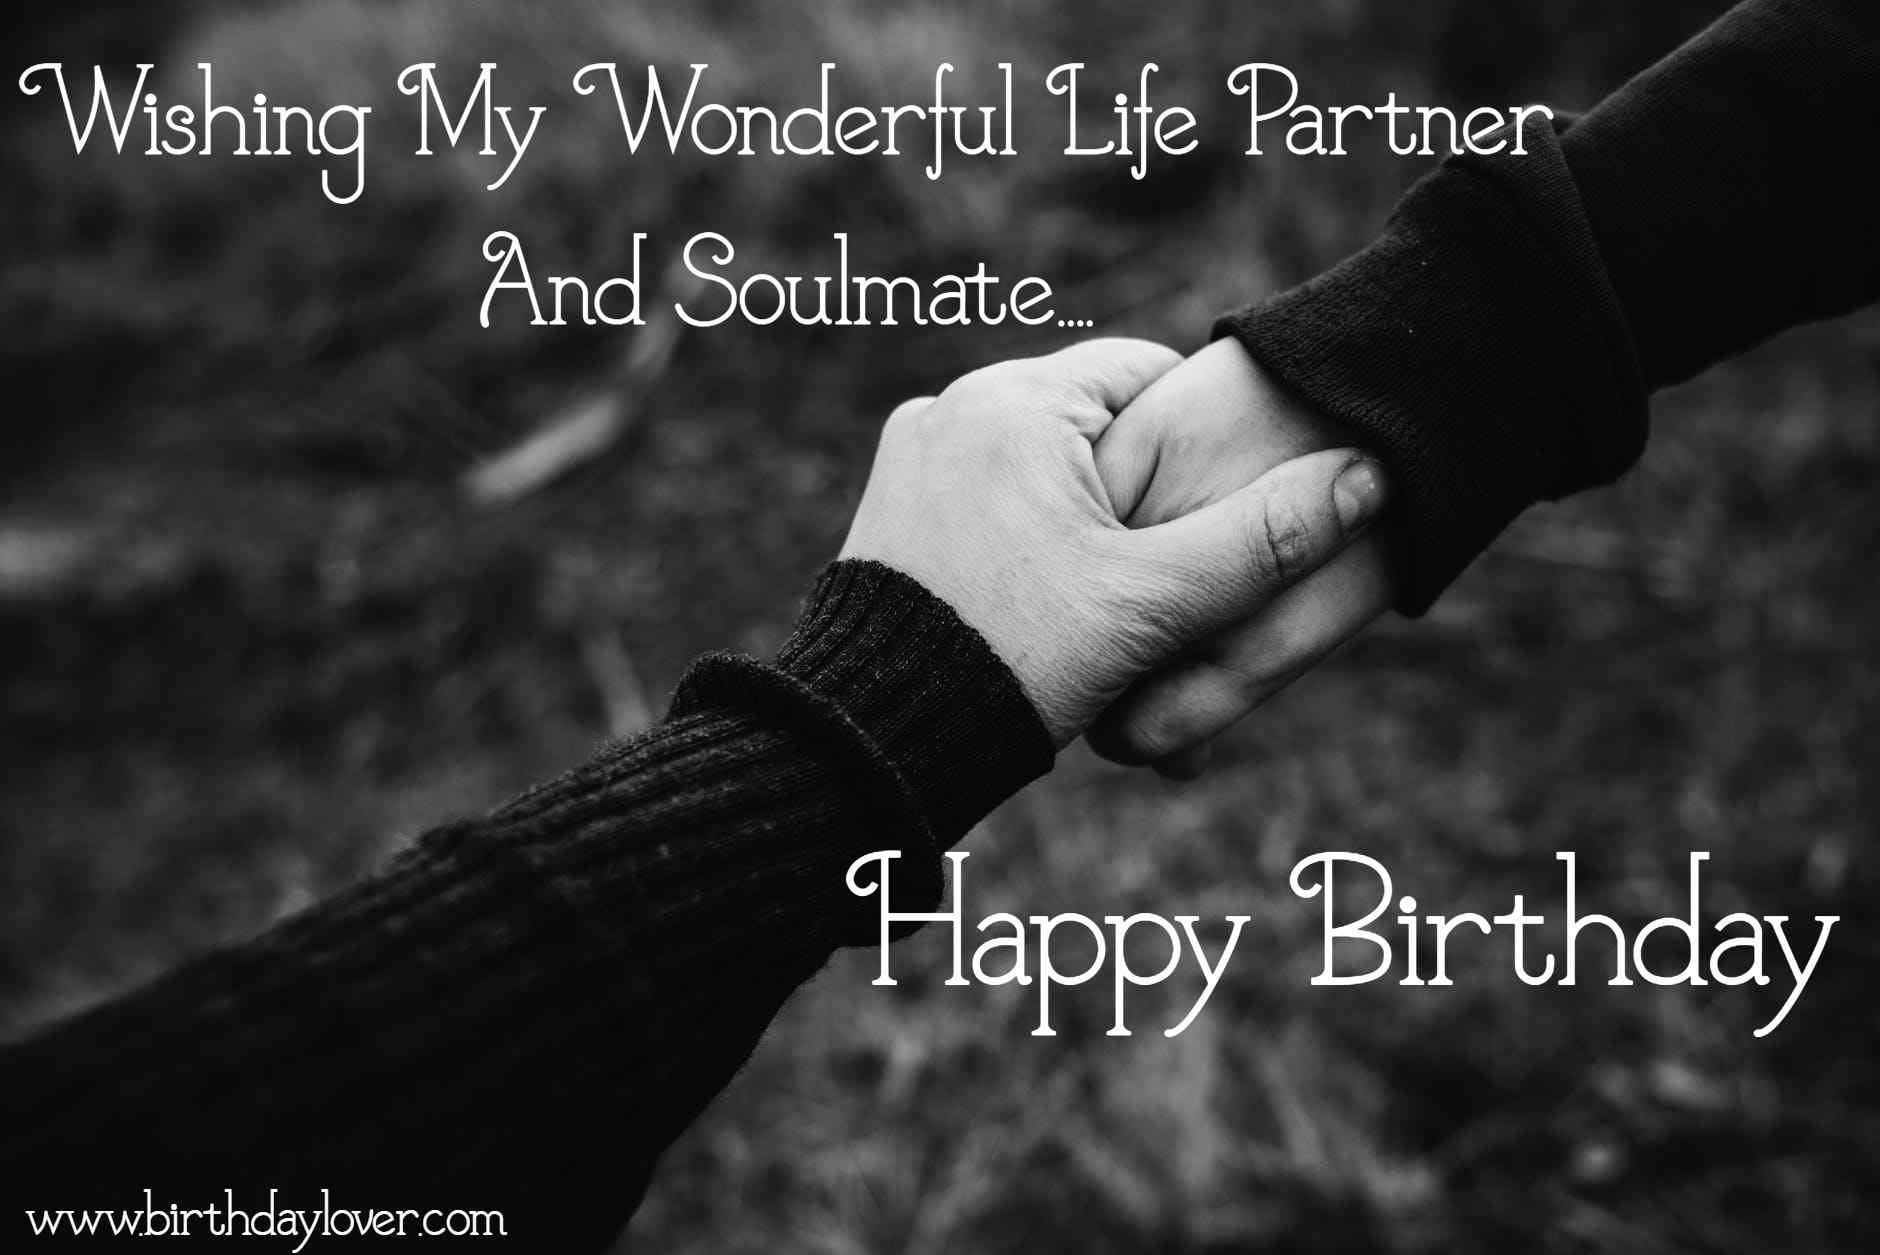 Happy birthday wishes for Lover- Birthday Lover  by Happy